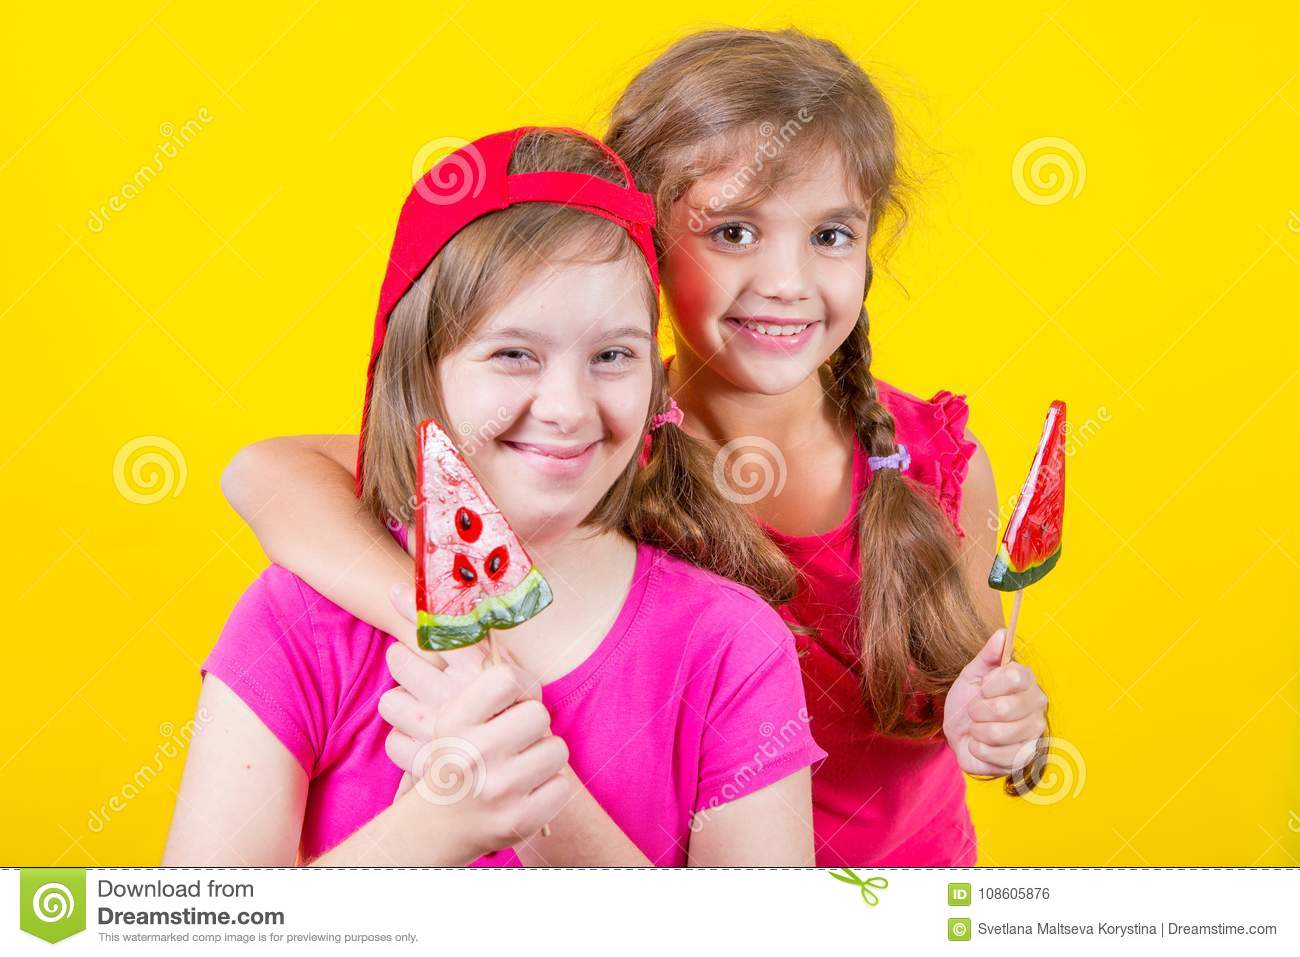 Girl Down syndrome and little girl with large Lollipop